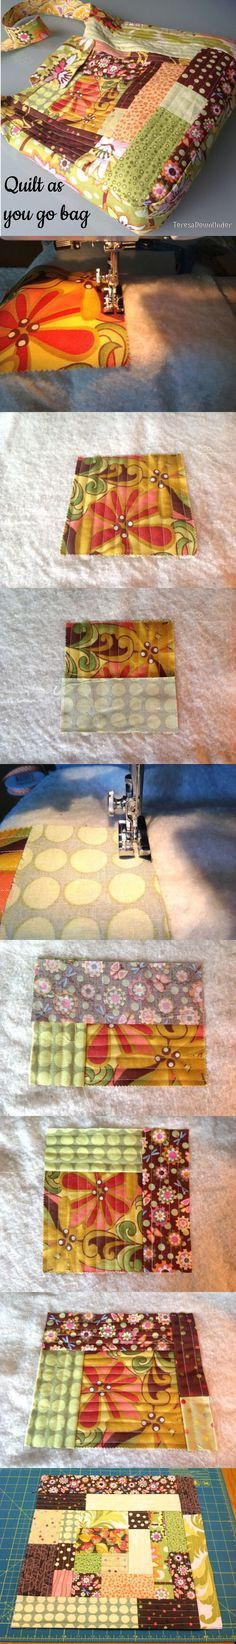 Quilt as you go bag tutorial - Learn this easy patchwork technique.